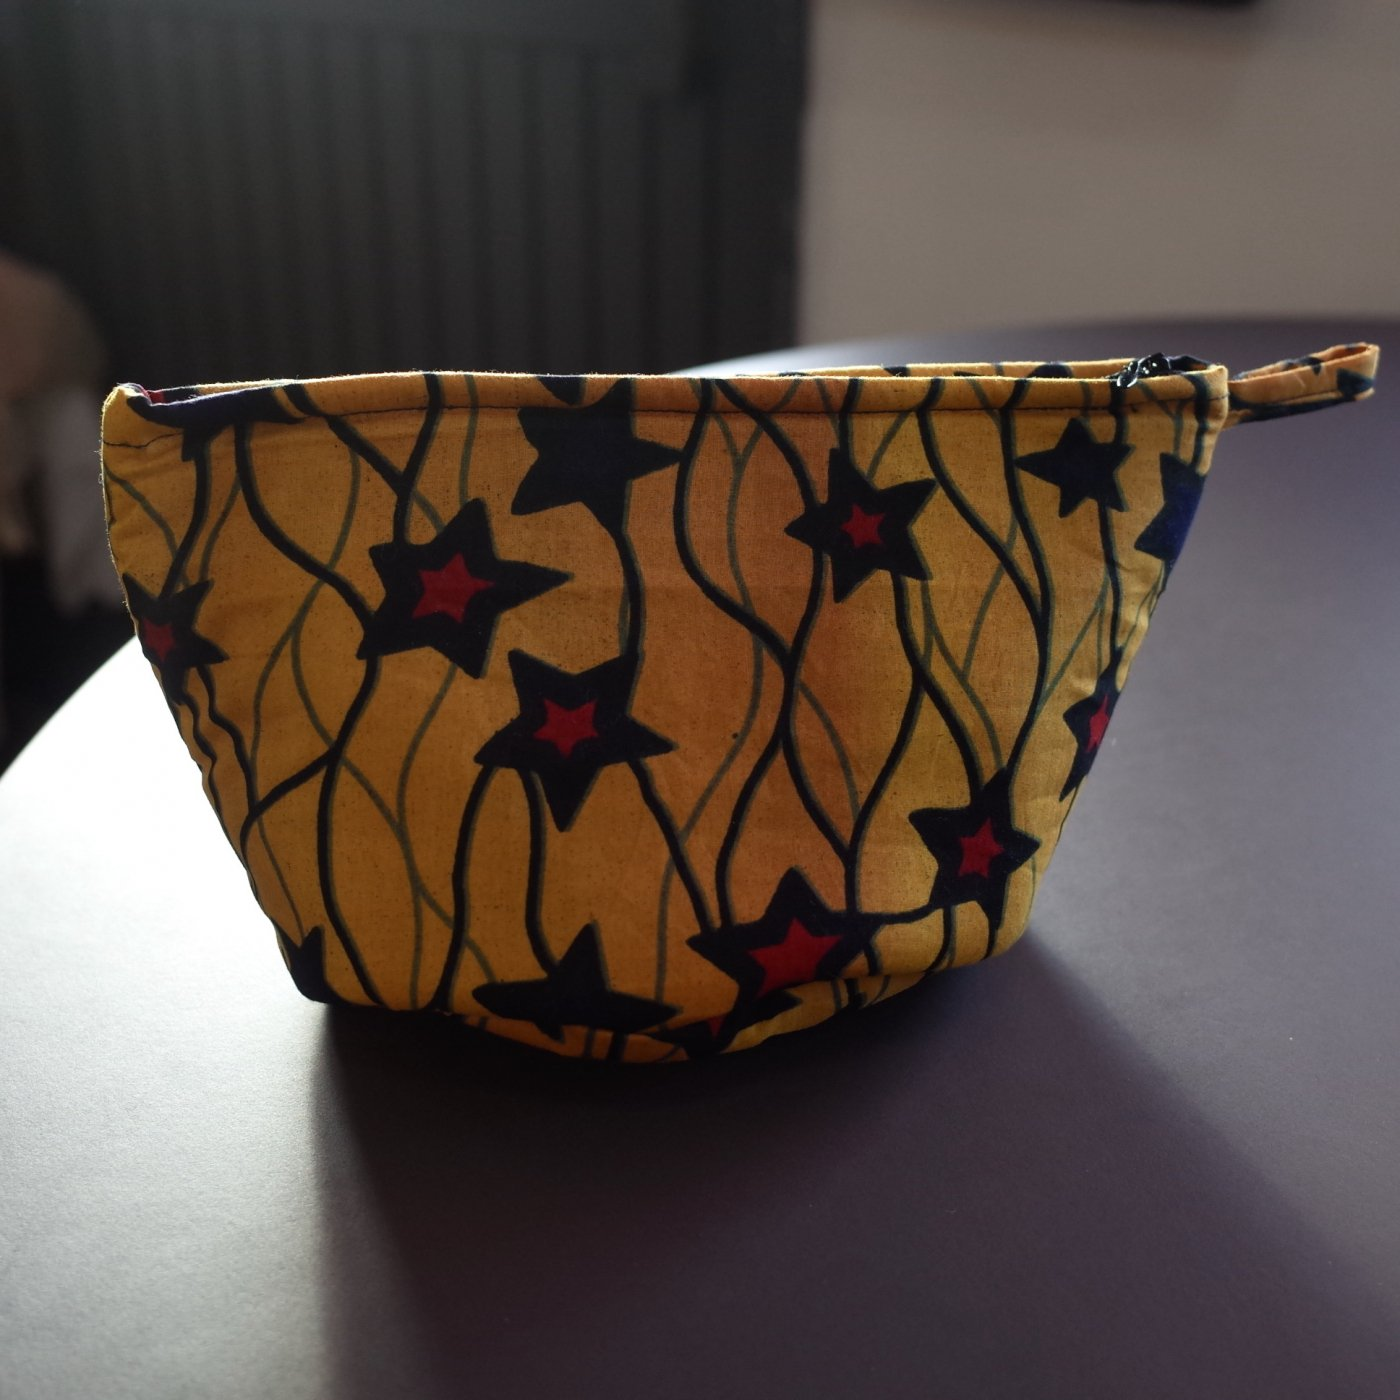 <img class='new_mark_img1' src='https://img.shop-pro.jp/img/new/icons5.gif' style='border:none;display:inline;margin:0px;padding:0px;width:auto;' />AFRICAN PRINT POUCH-HANDMADE BY SENEGALESE-